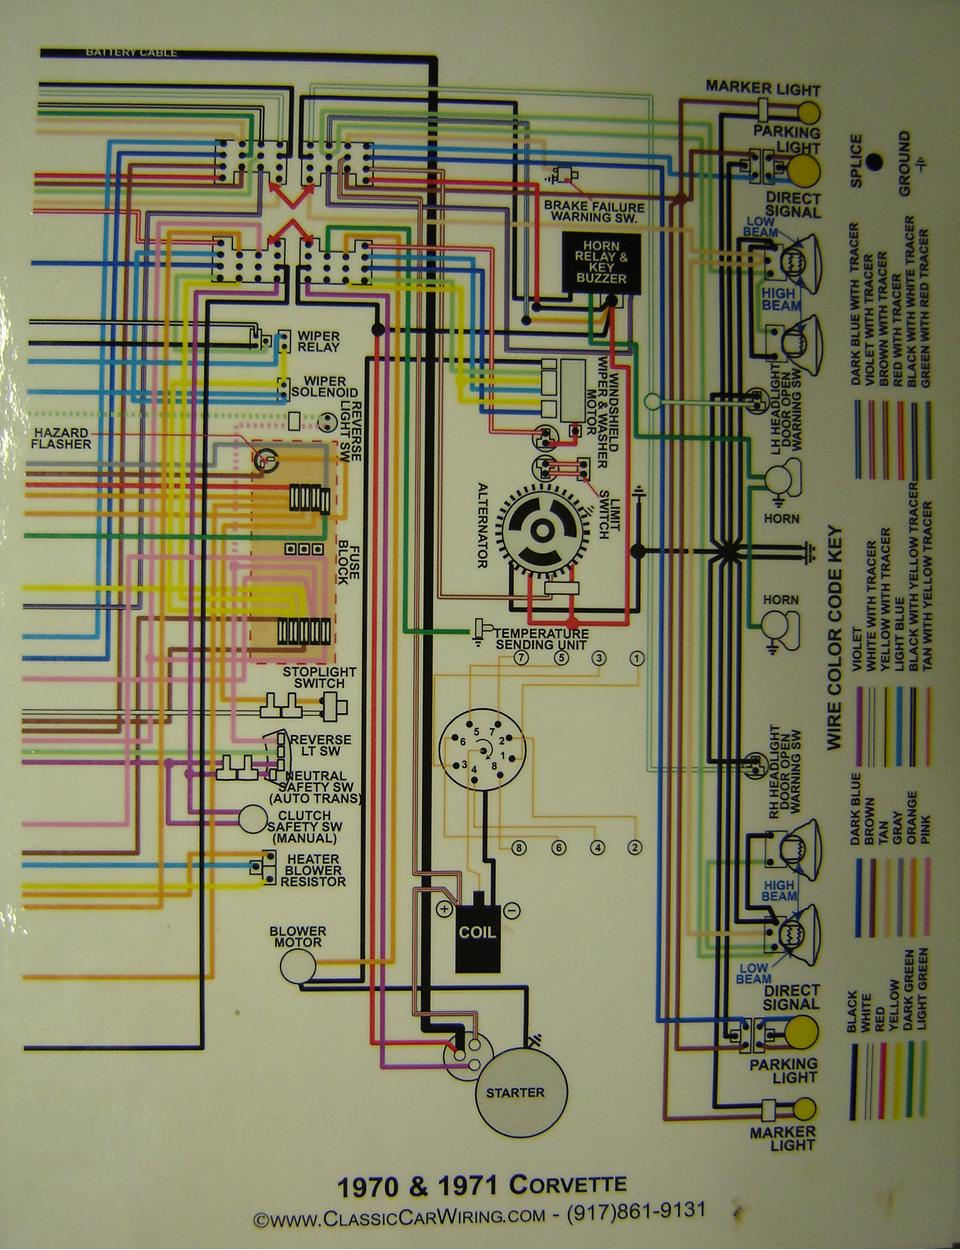 1970 71 corvette color wiring diagram B chevy diagrams 1970 corvette wiring diagram at bayanpartner.co